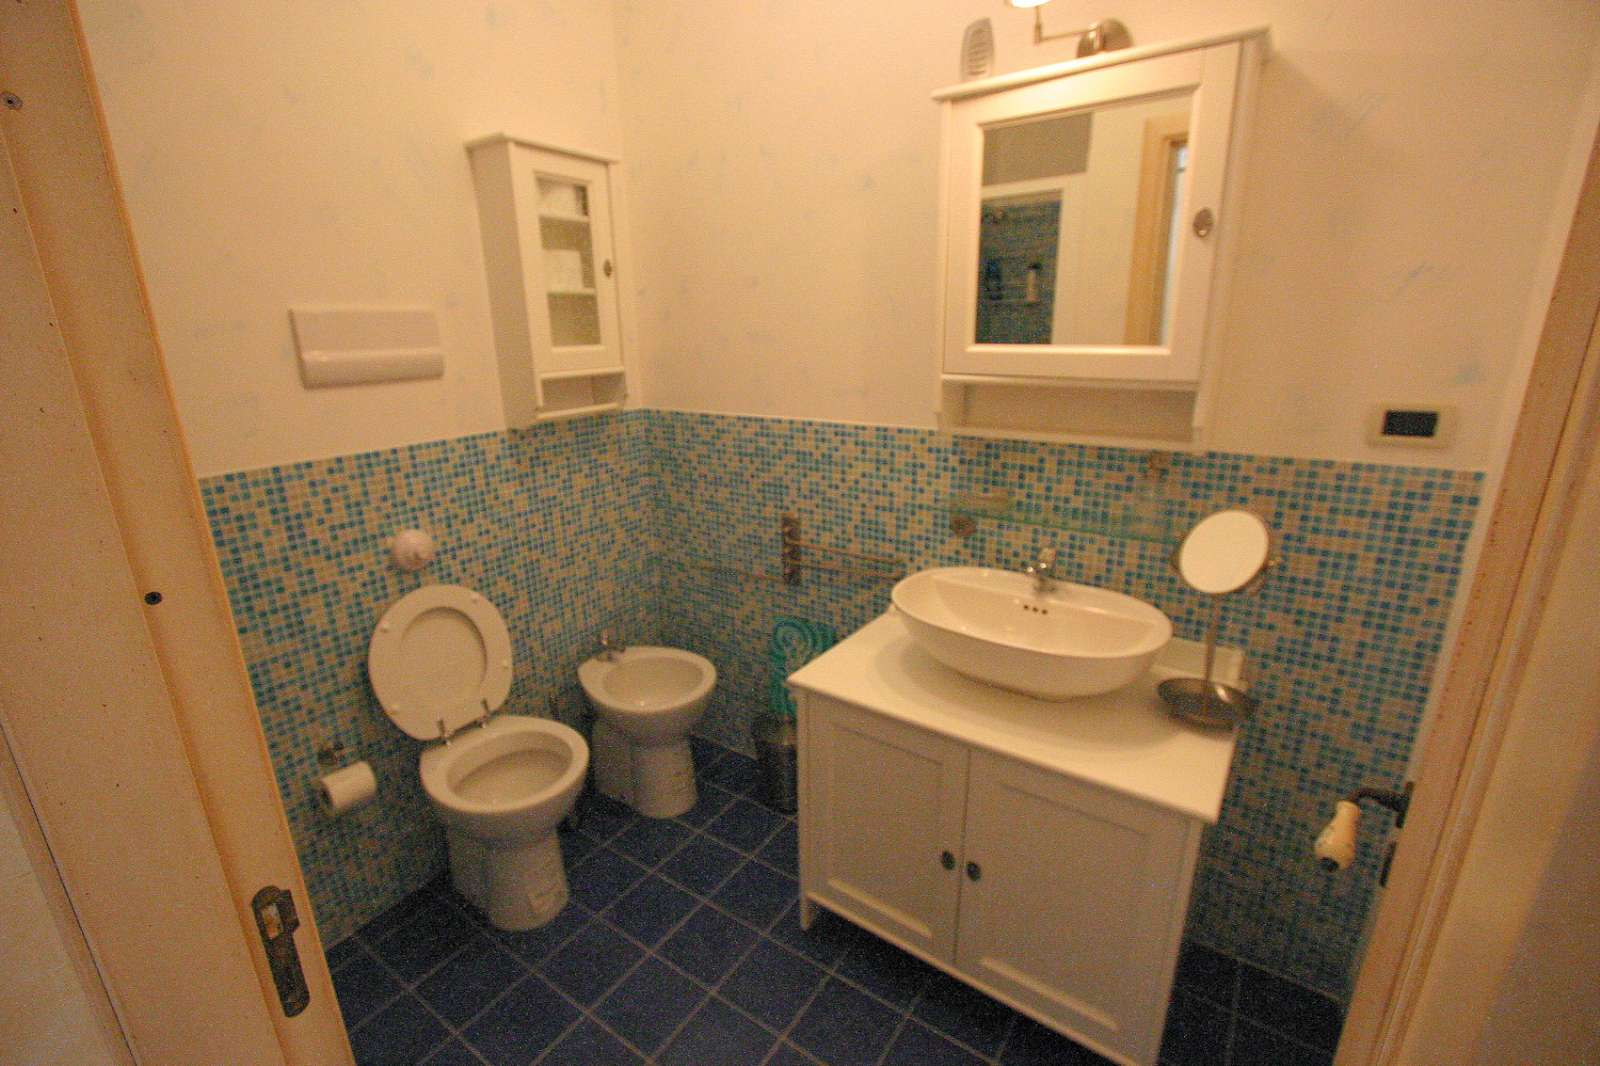 Limone: Bathroom